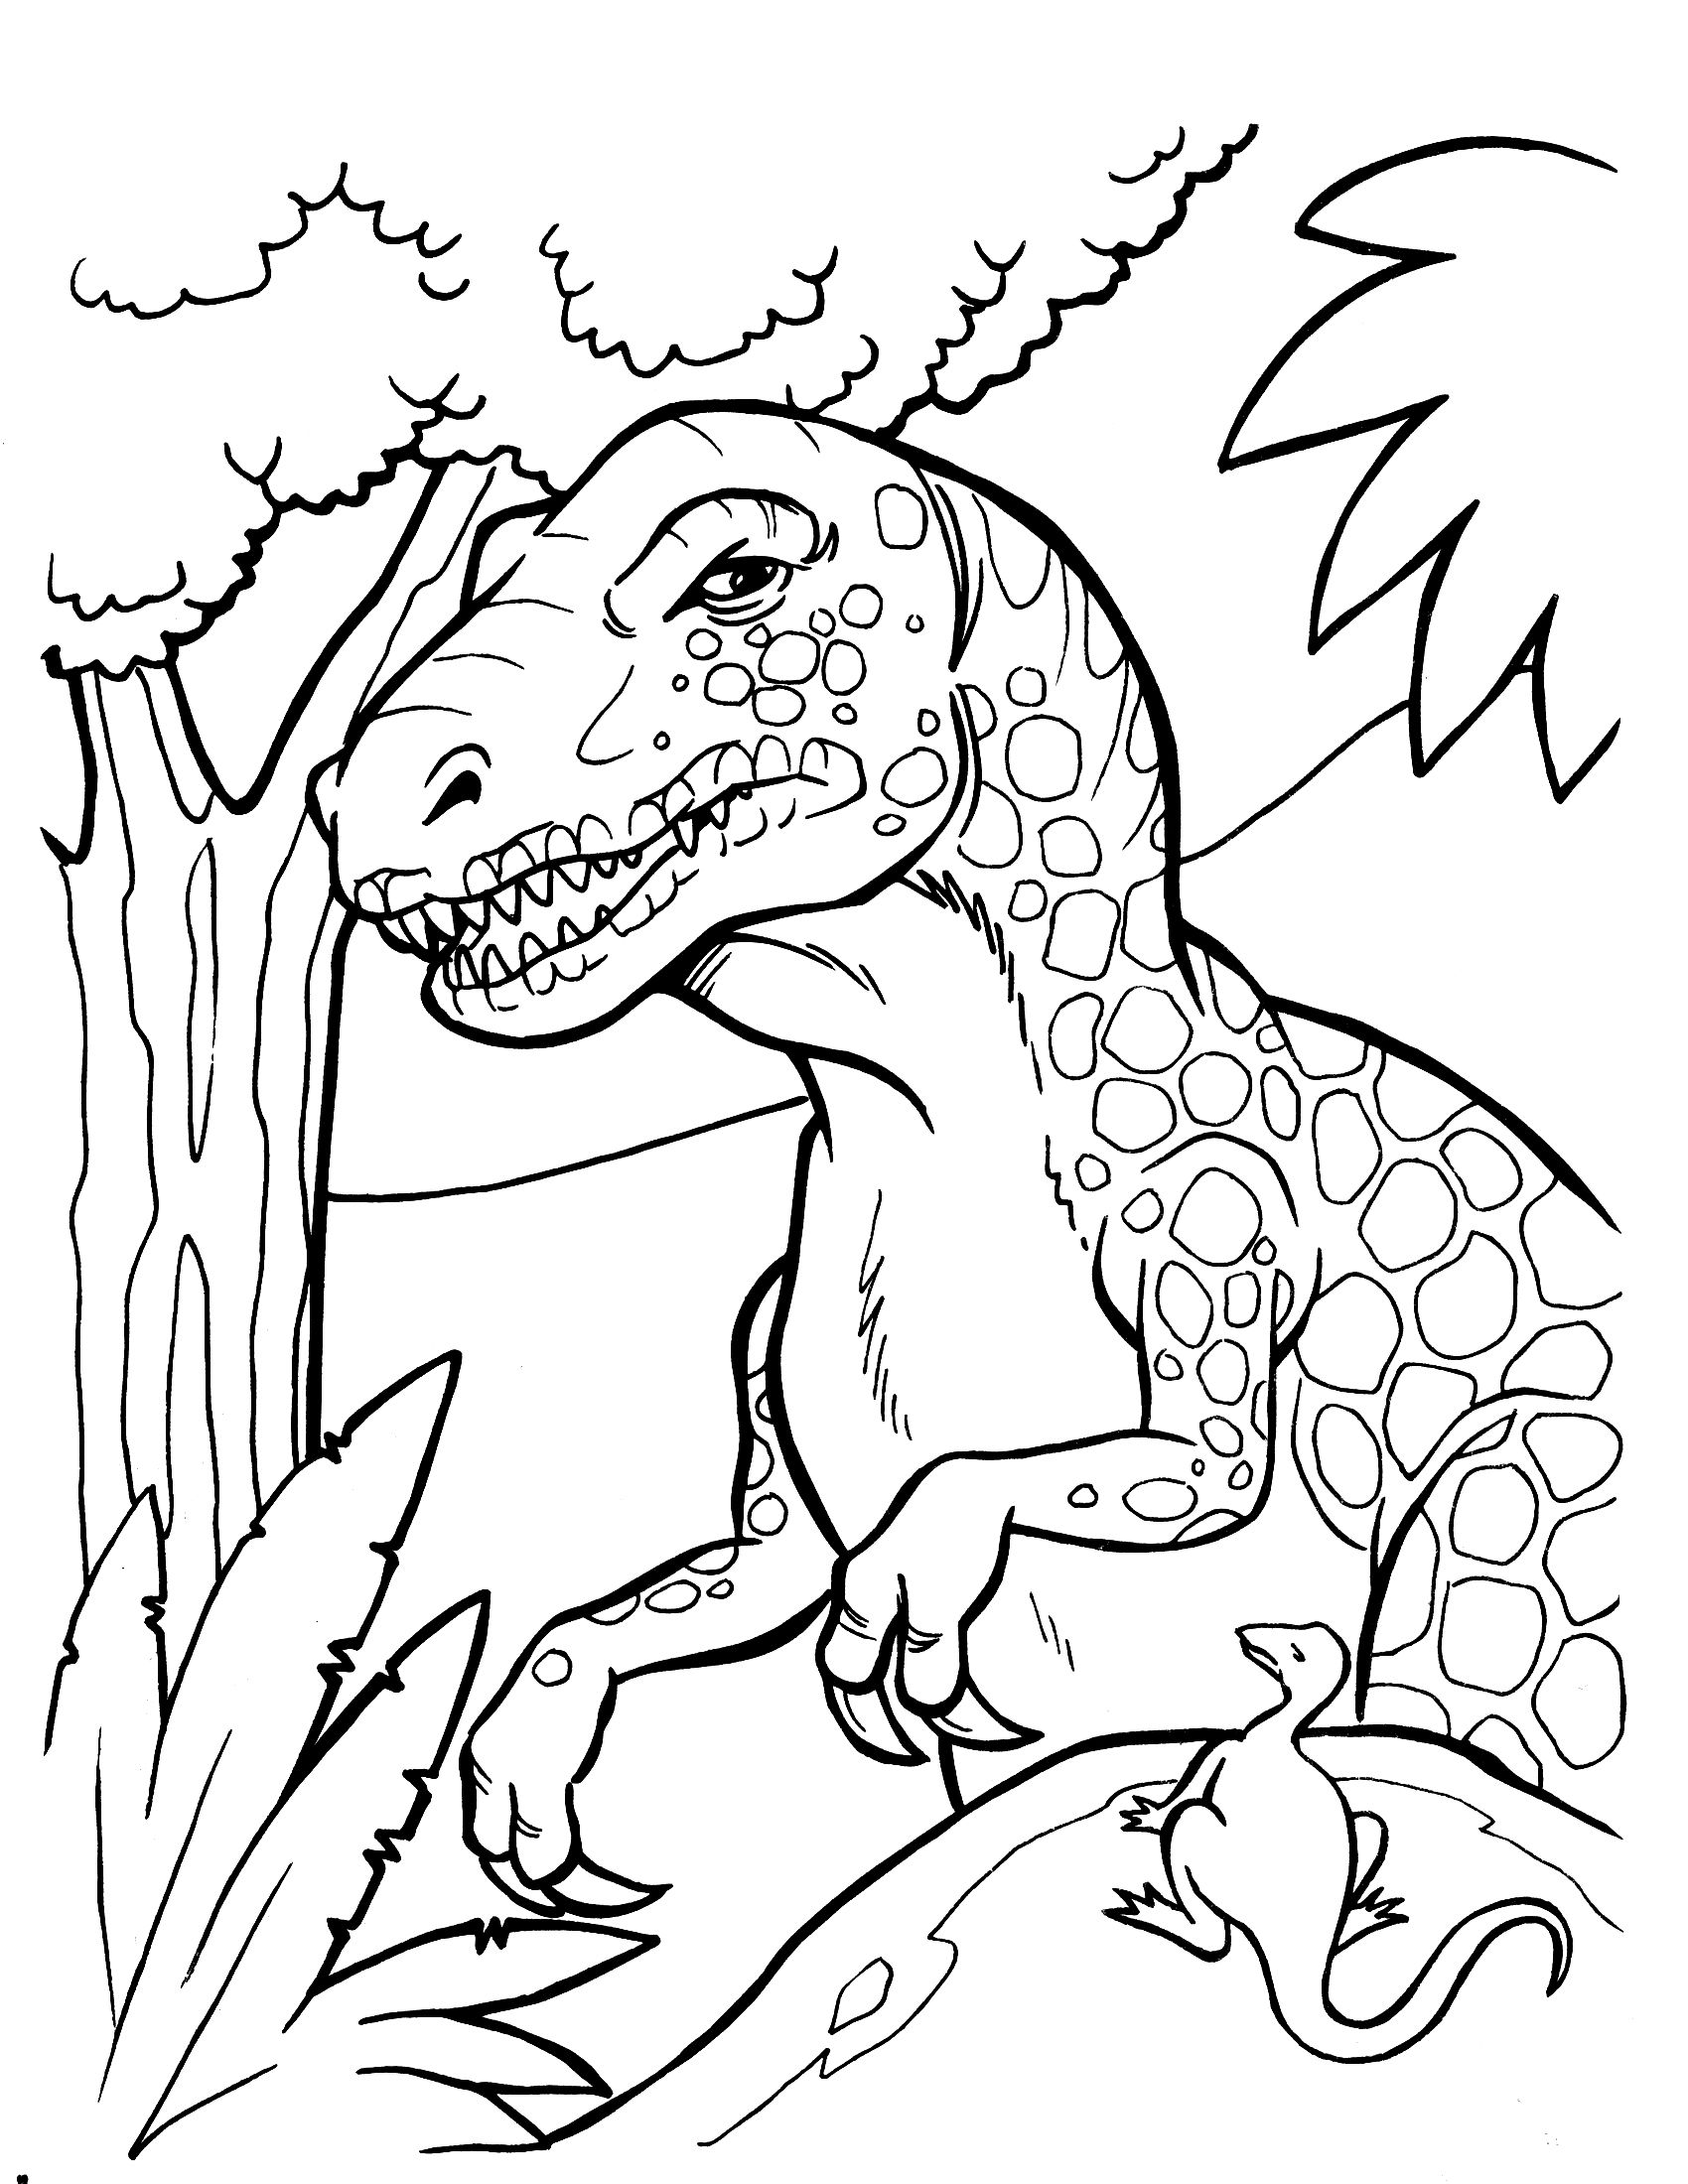 Free Printable Dinosaur Coloring Pages Omalovanky